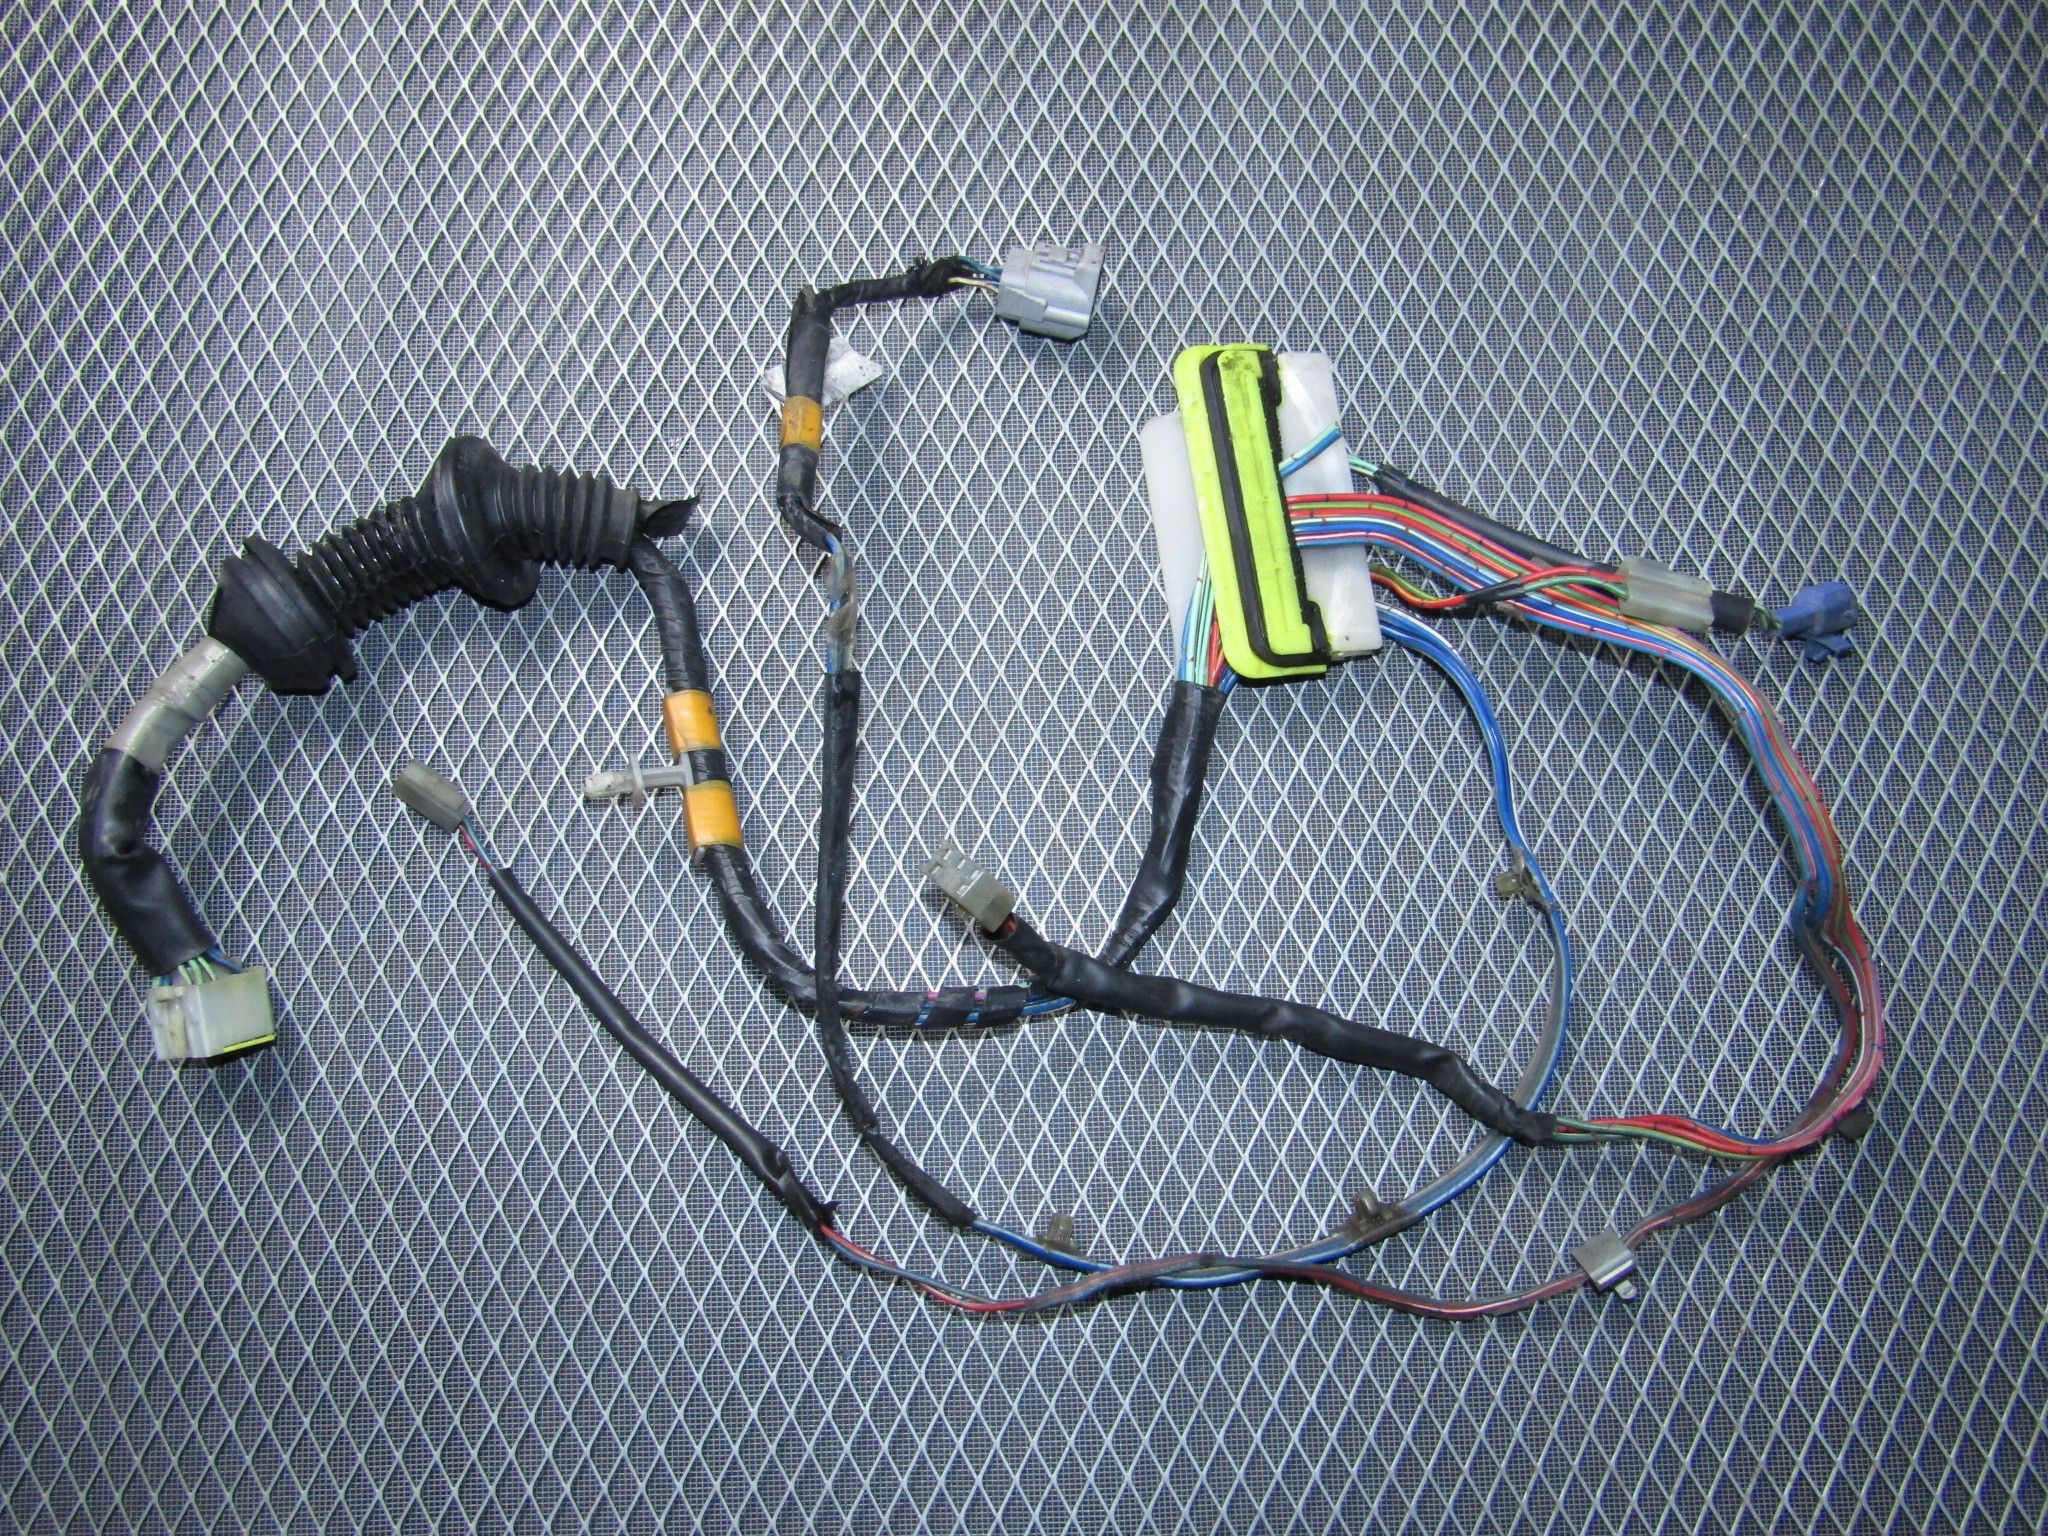 a6234cd548bc8b3aa01f2cdc0e061b9e 87 91 toyota crown royal saloon oem door wiring harness front